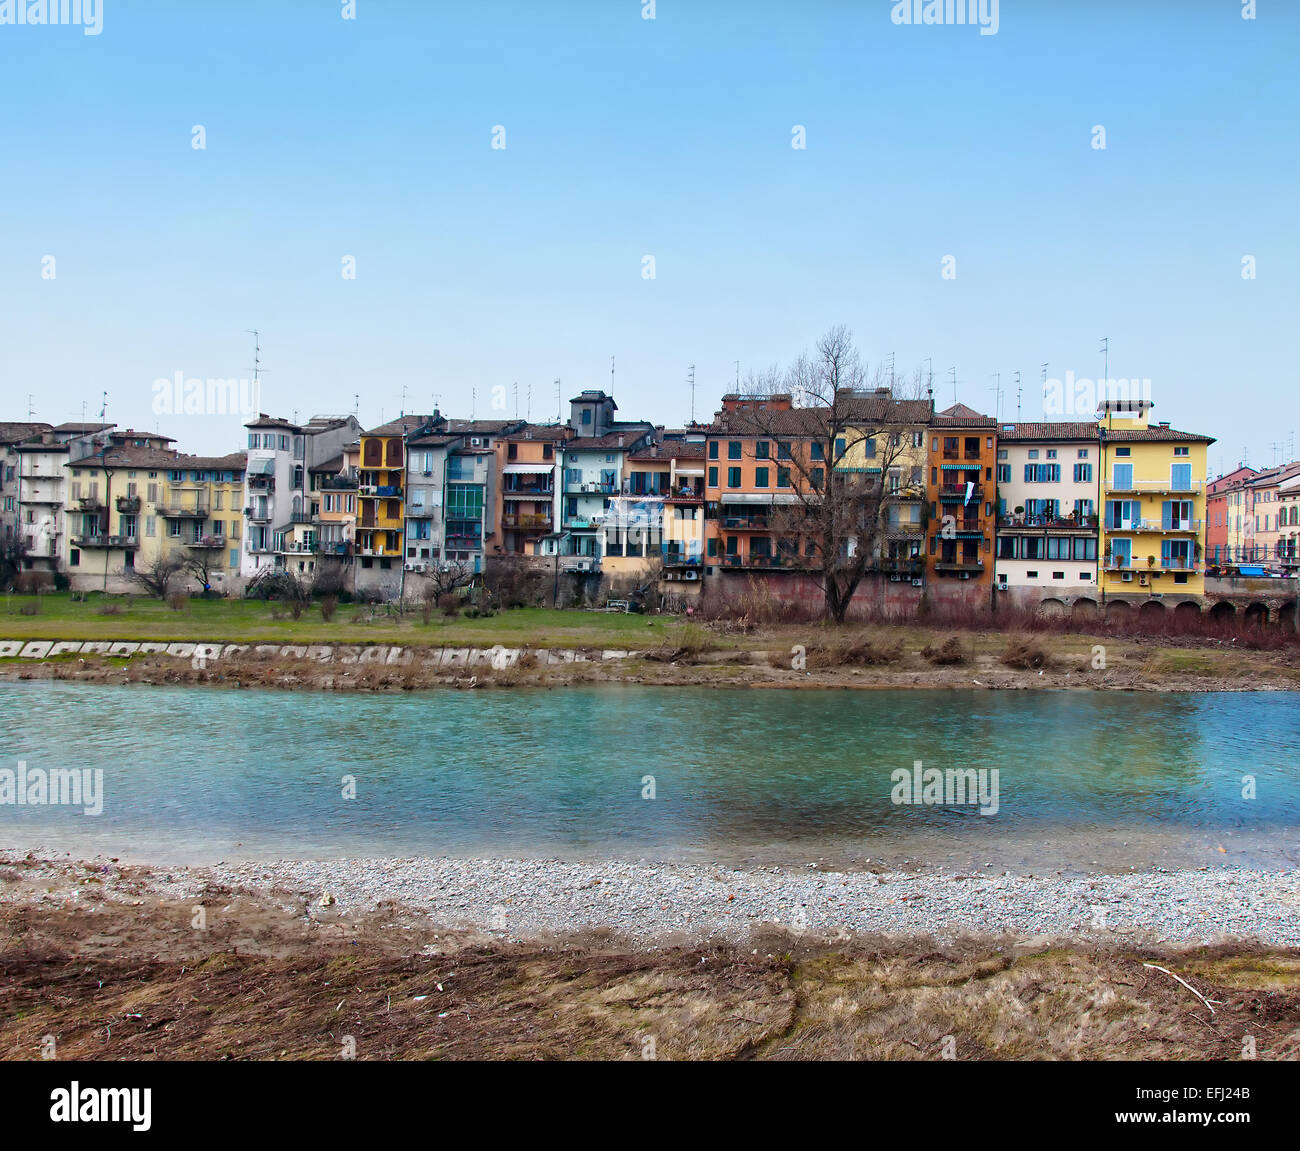 Parma river with typical city houses and bridge in winter day - Stock Image